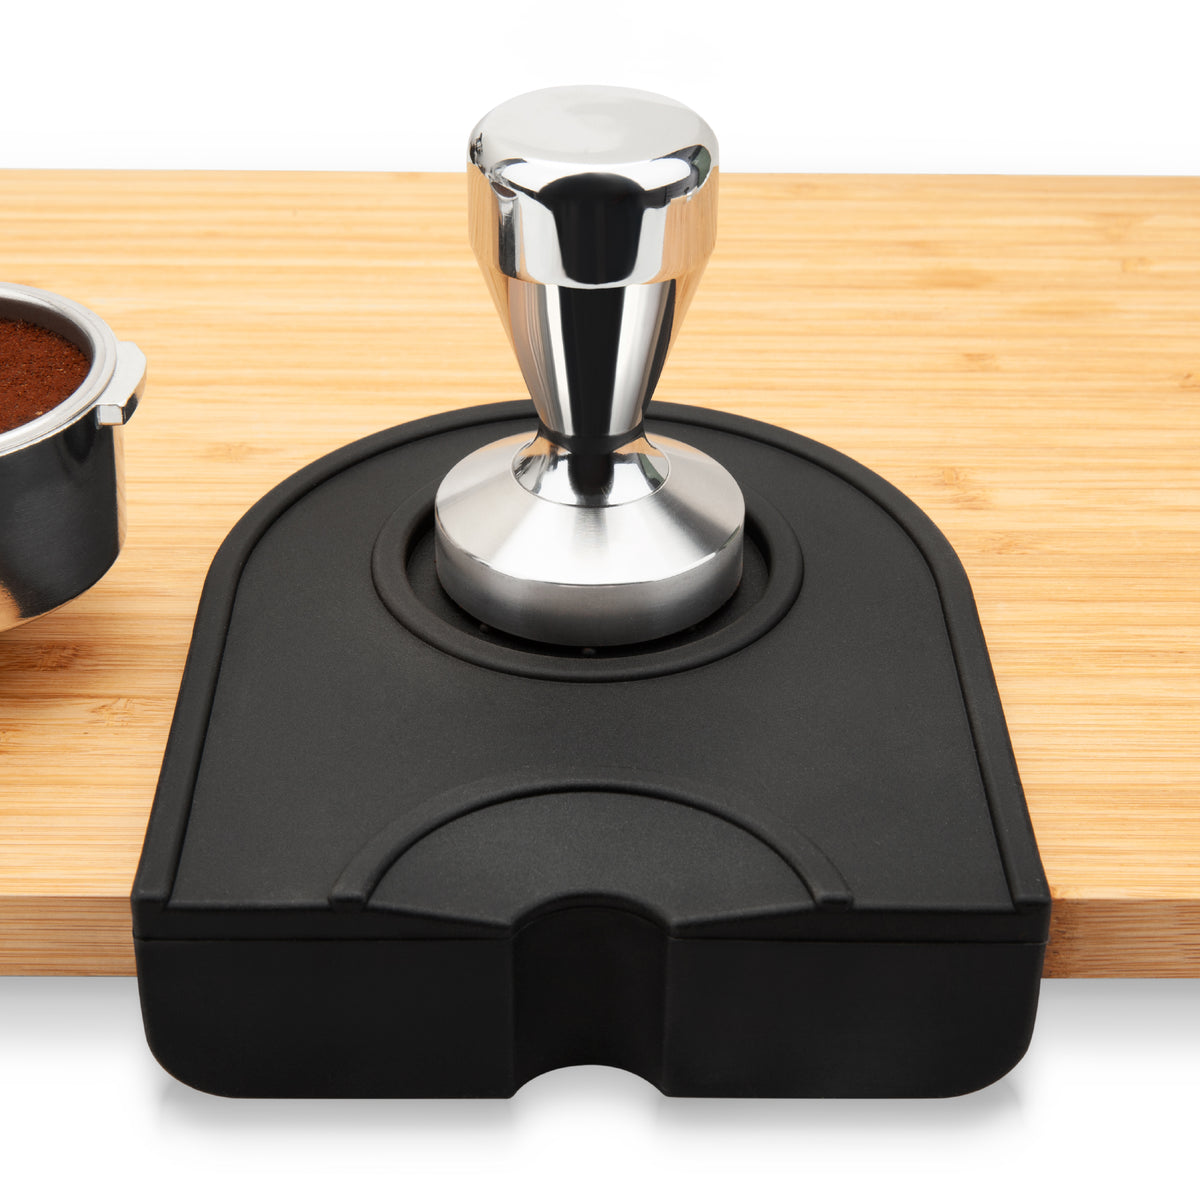 EspressoWorks Silicone Coffee Tamper Mat